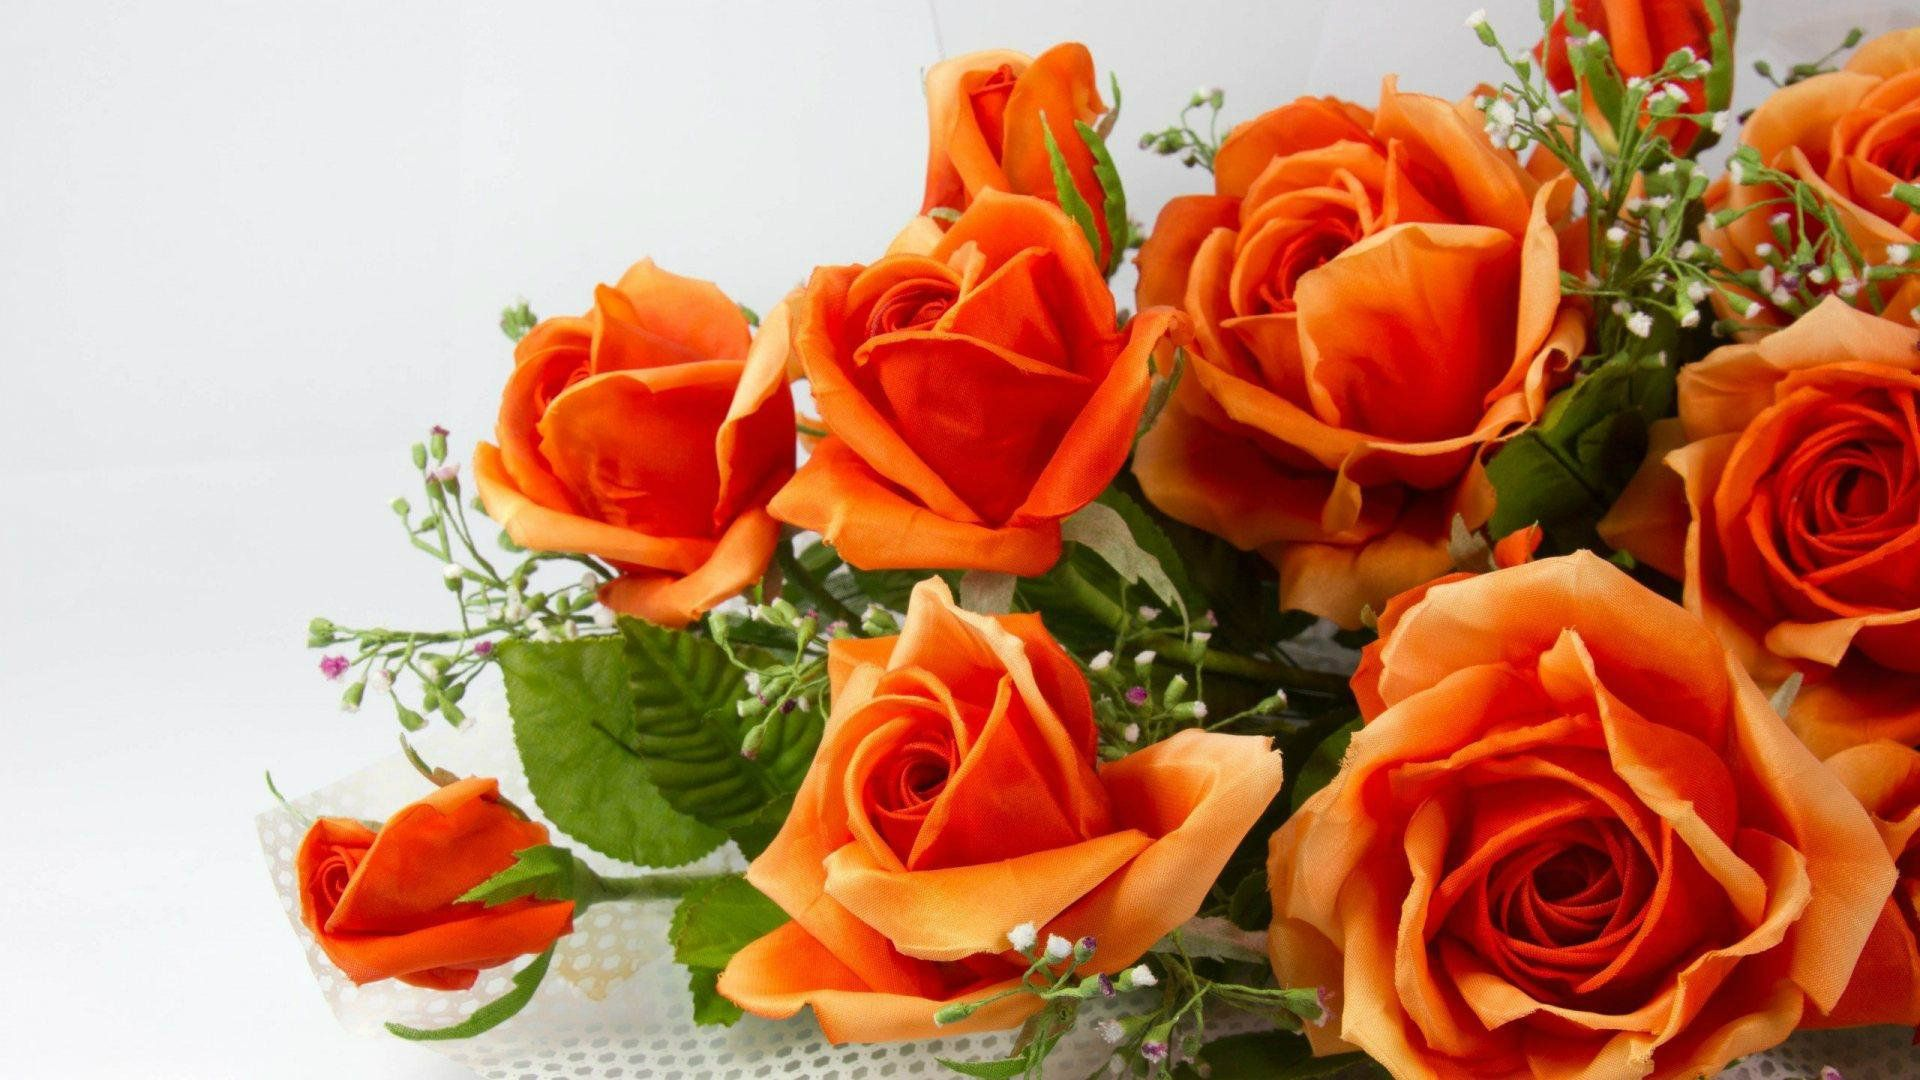 Flowers play a very important role in live the beauty of flowers flowers play a very important role in live the beauty of flowers colour and freshness allows us to carry our messages perfectly get well soon for our izmirmasajfo